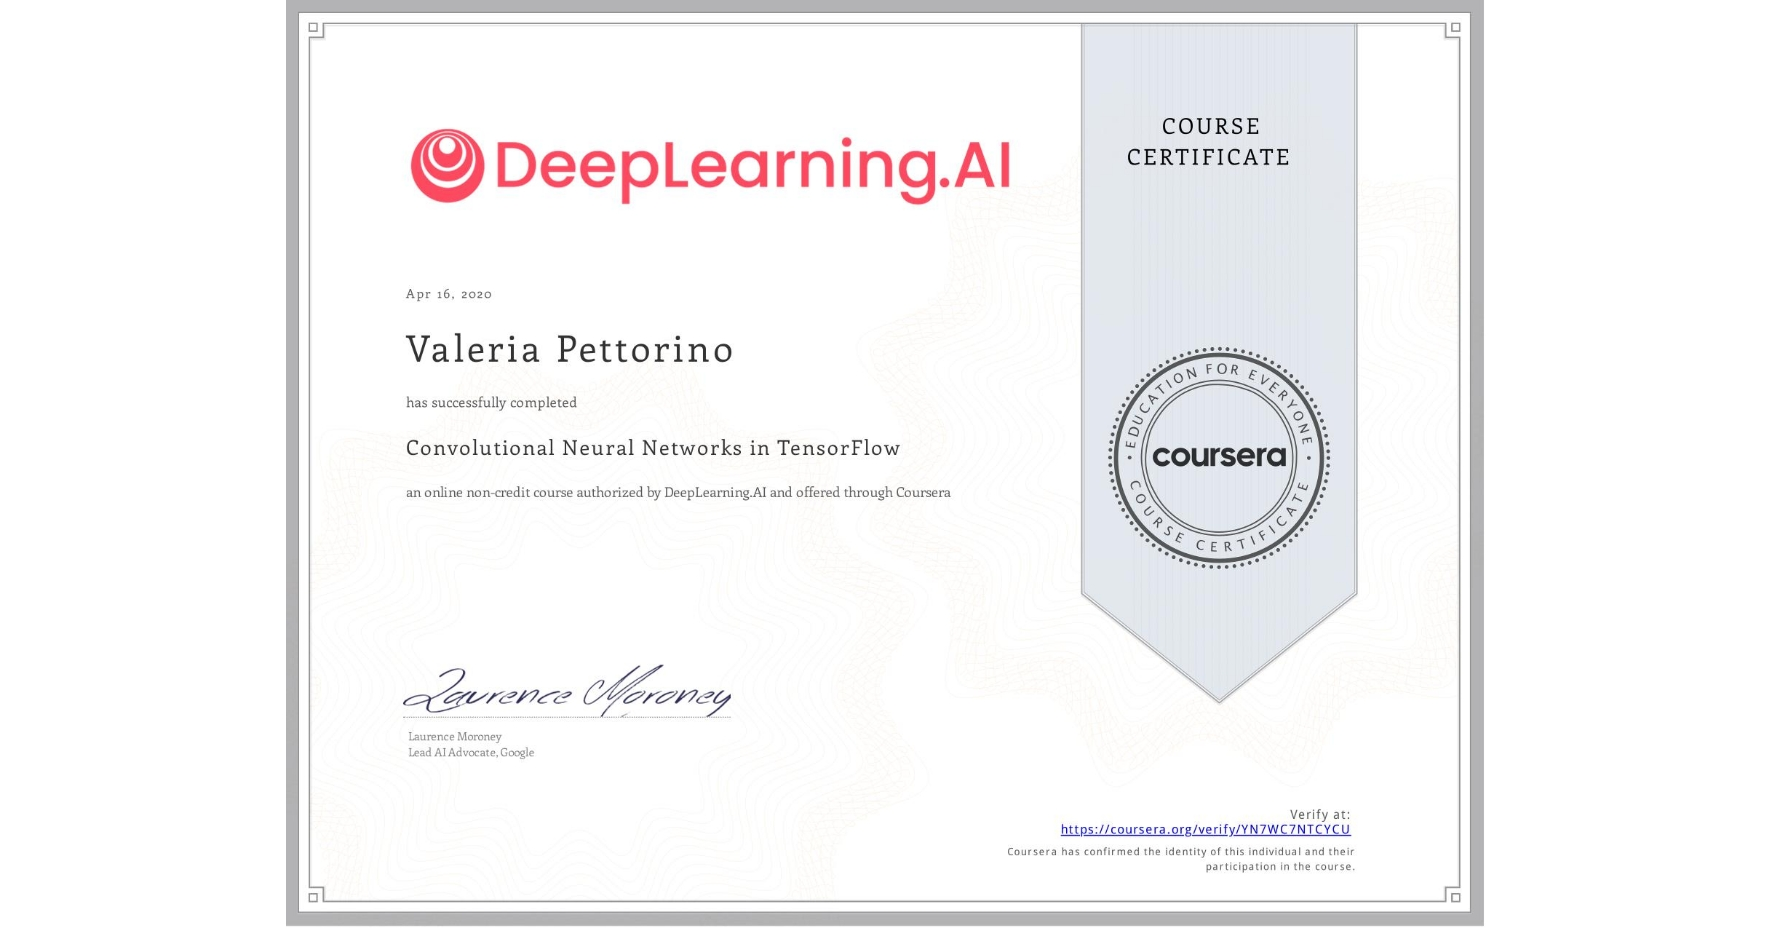 View certificate for Valeria Pettorino, Convolutional Neural Networks in TensorFlow, an online non-credit course authorized by DeepLearning.AI and offered through Coursera